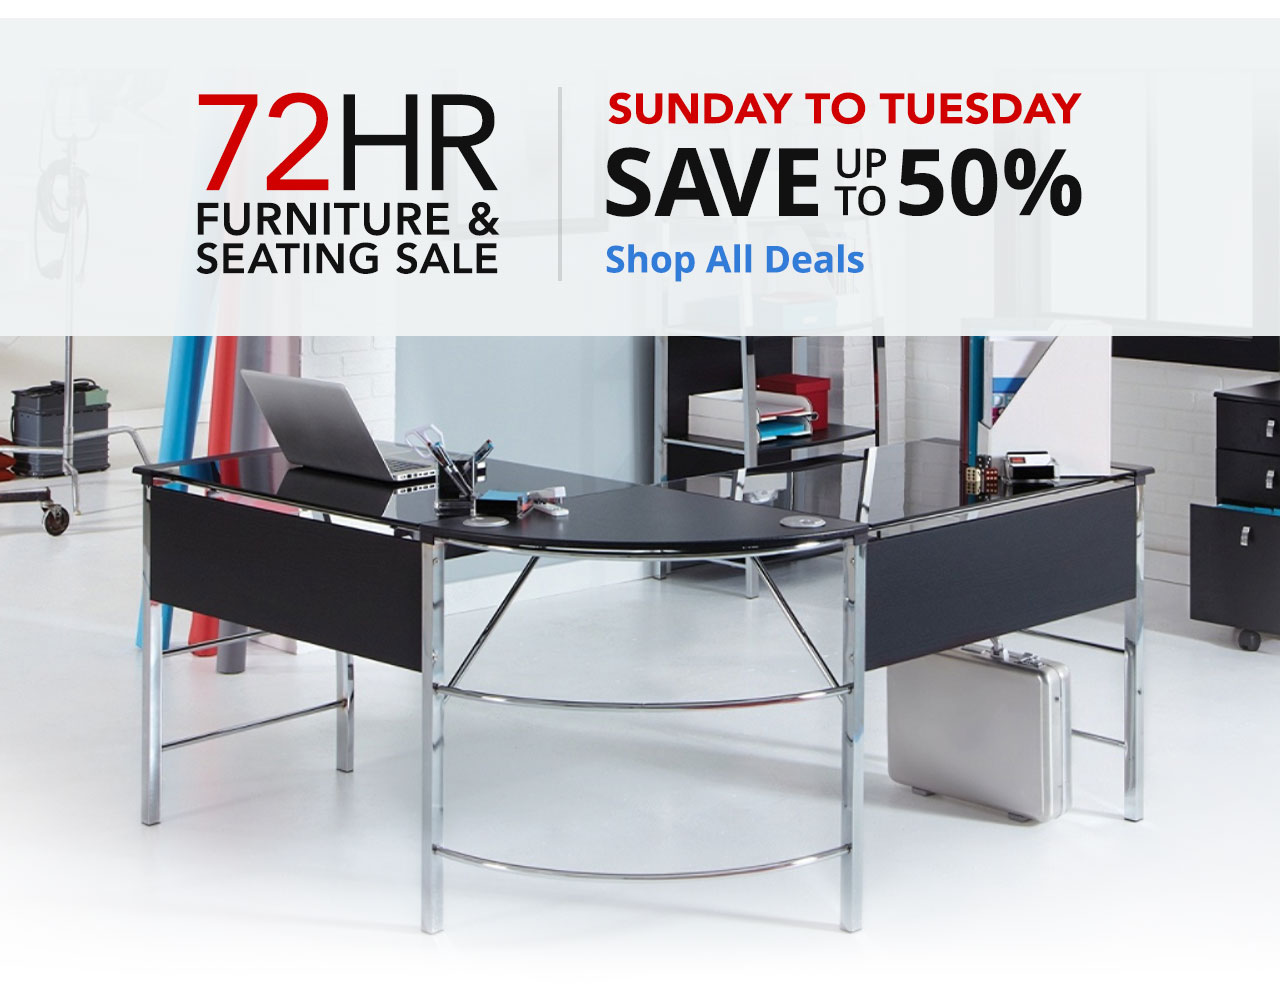 72 hour furniture seating sale save up to